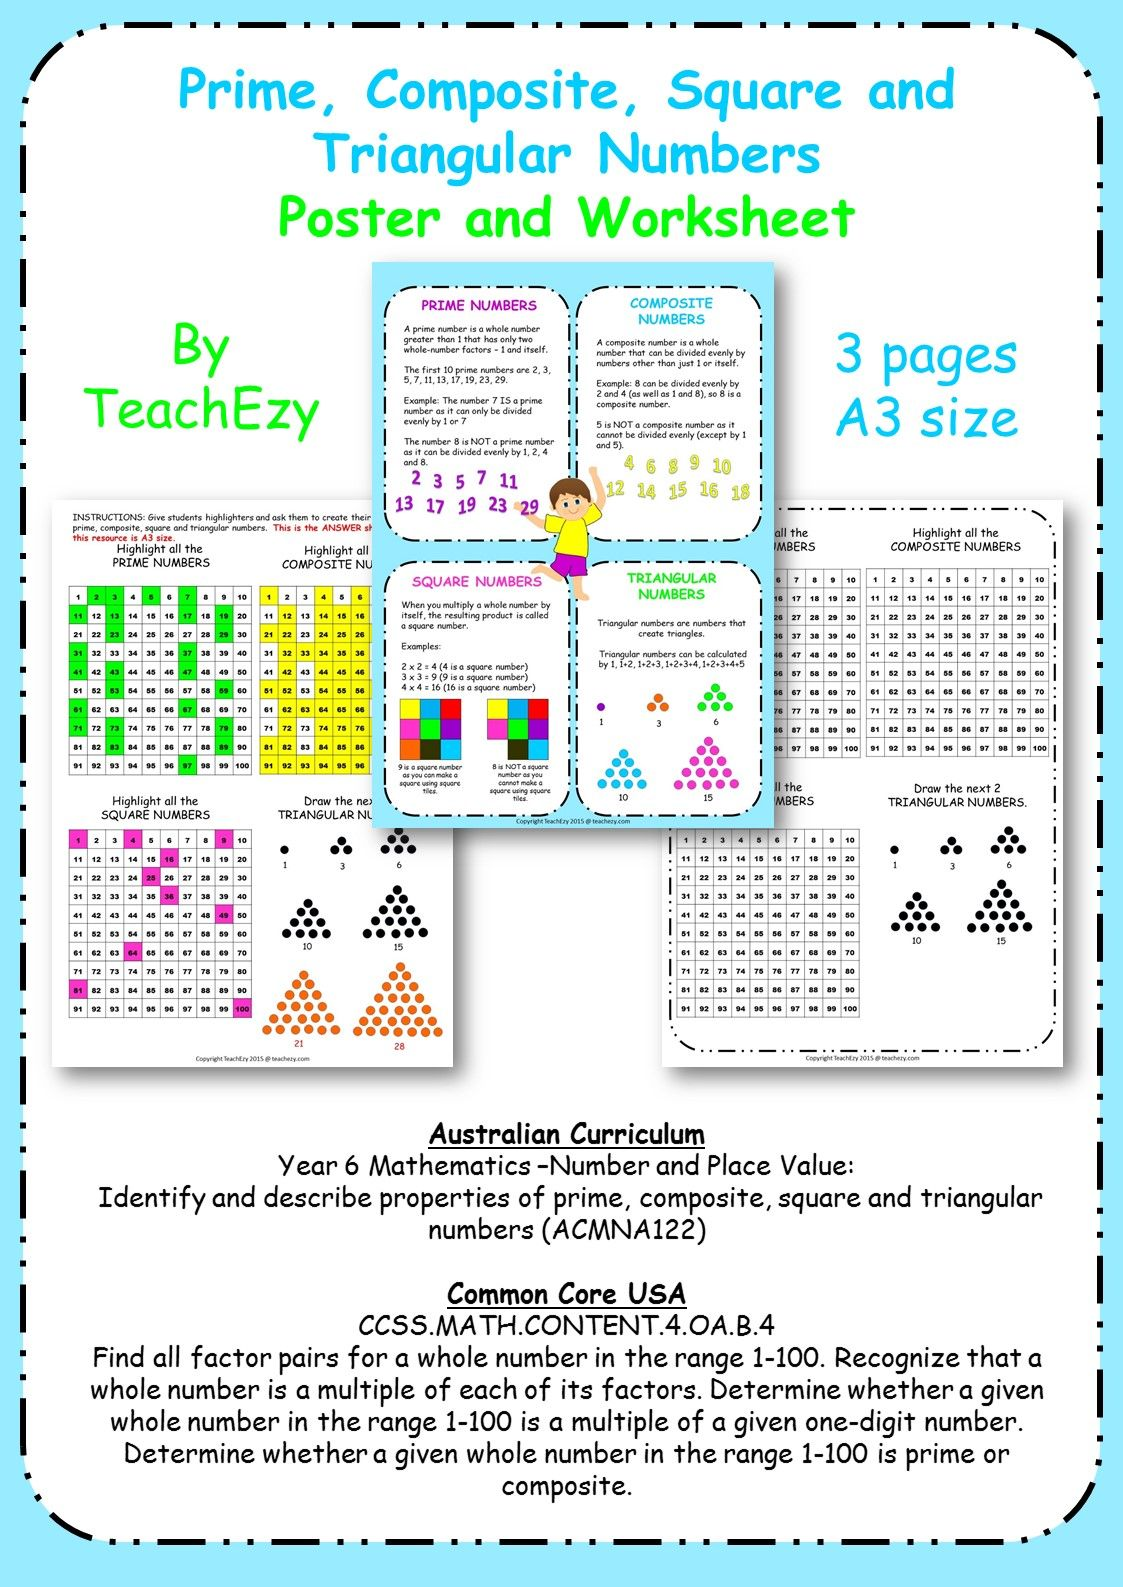 This Prime Composite Poster And Worksheet Contains A